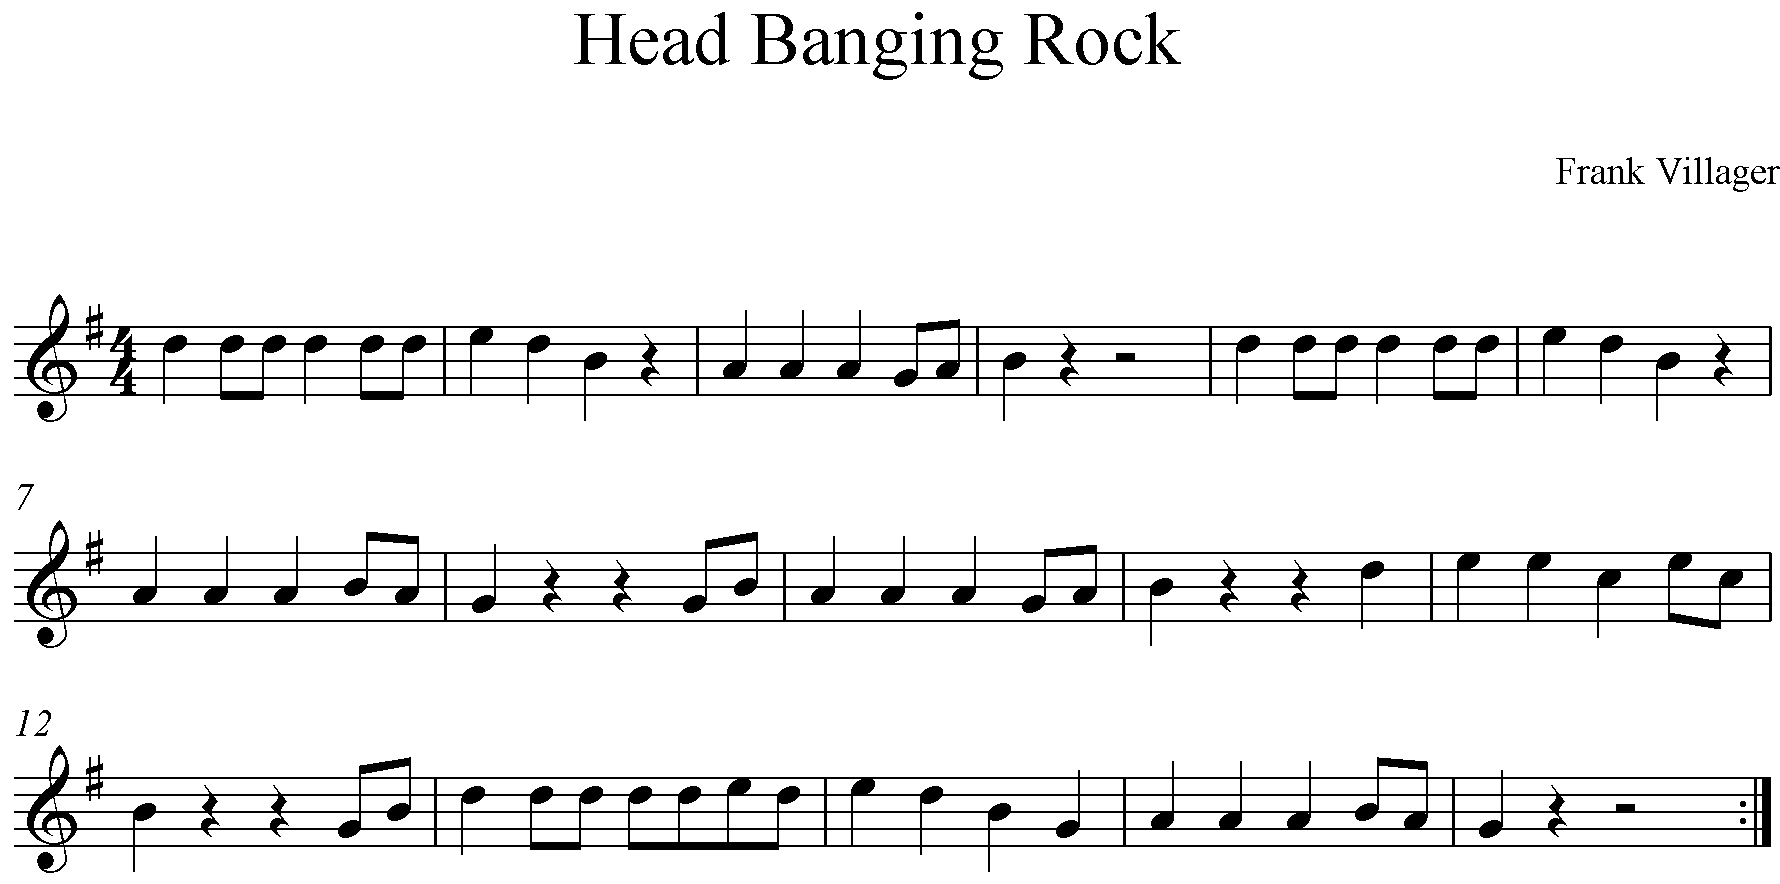 Head Banging Rock